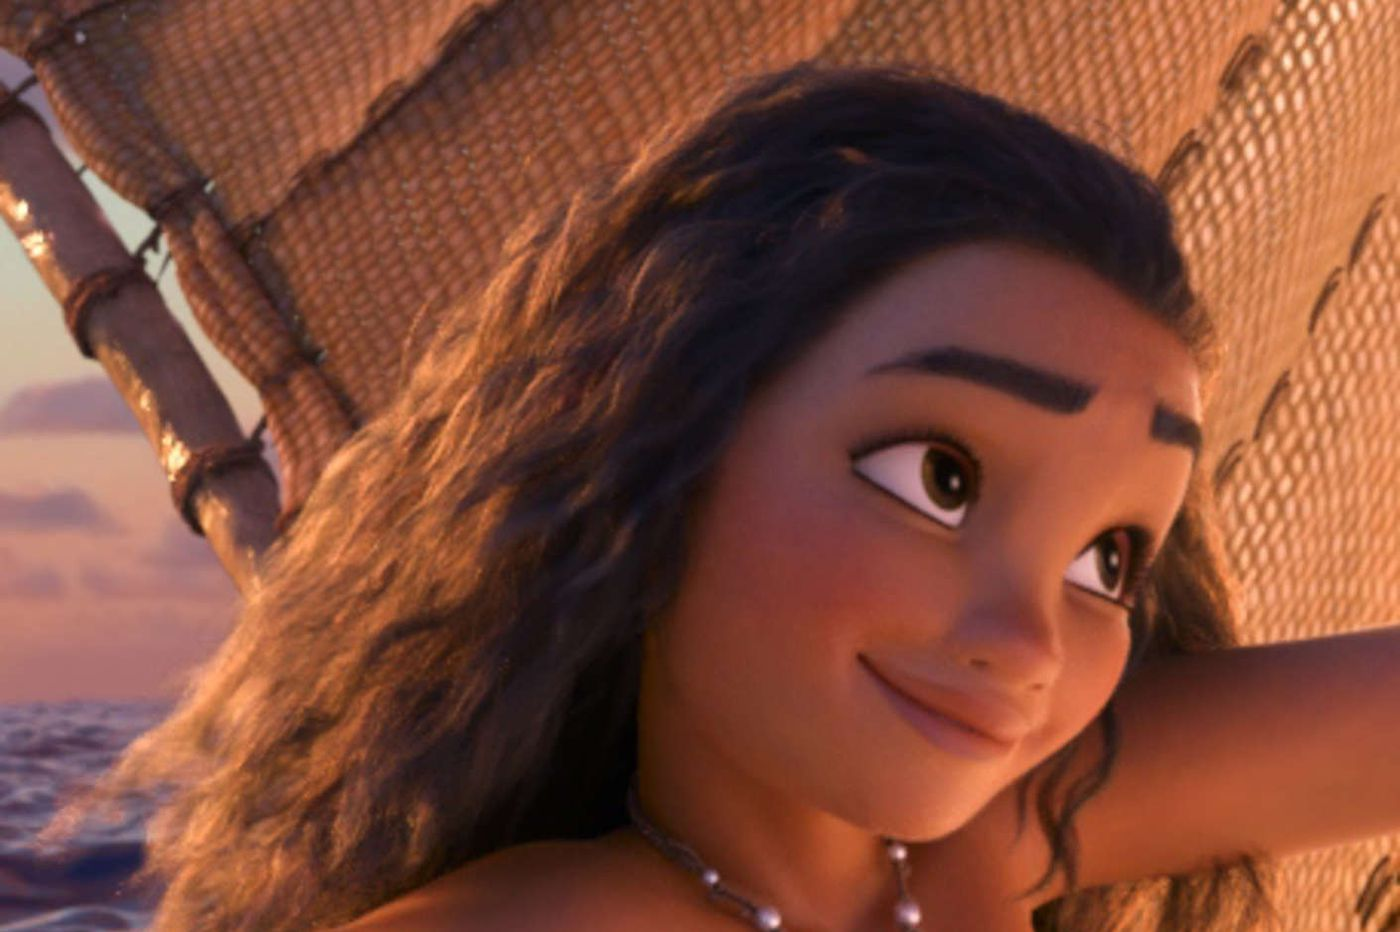 'Moana' the princess cruises to top spot at box office with $81M